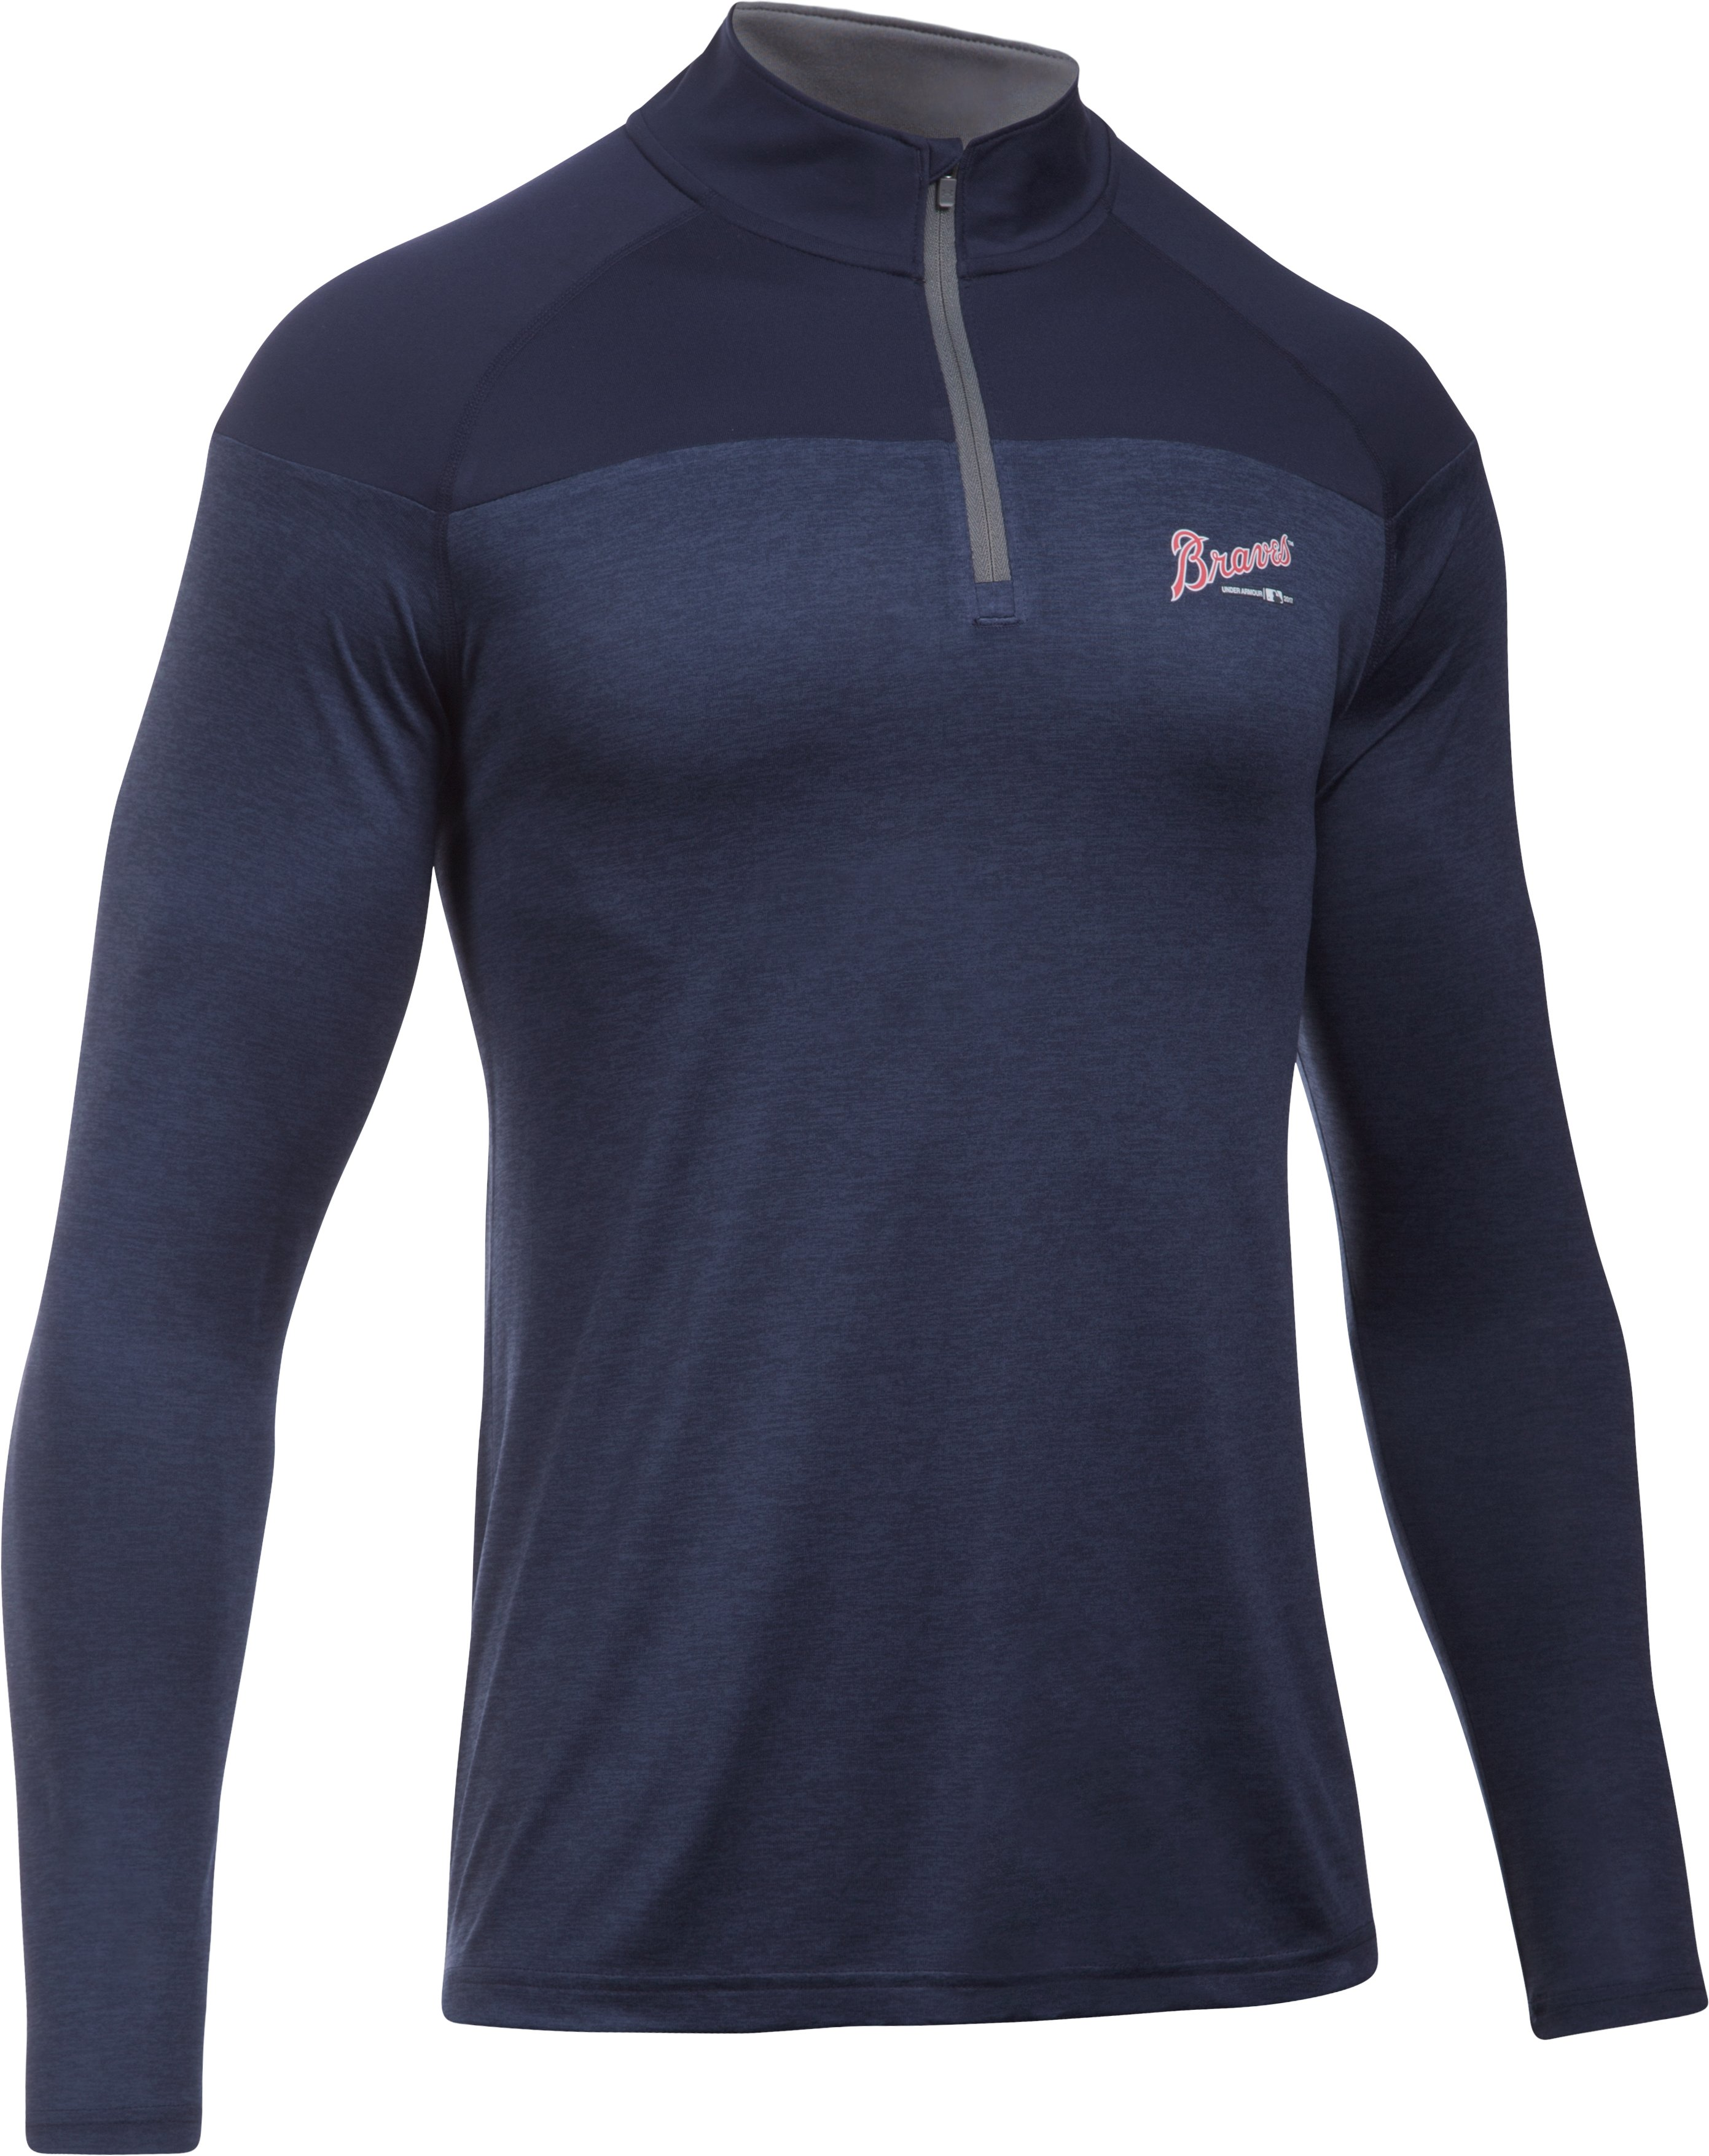 Men's Braves UA Tech™ ¼ Zip, Midnight Navy